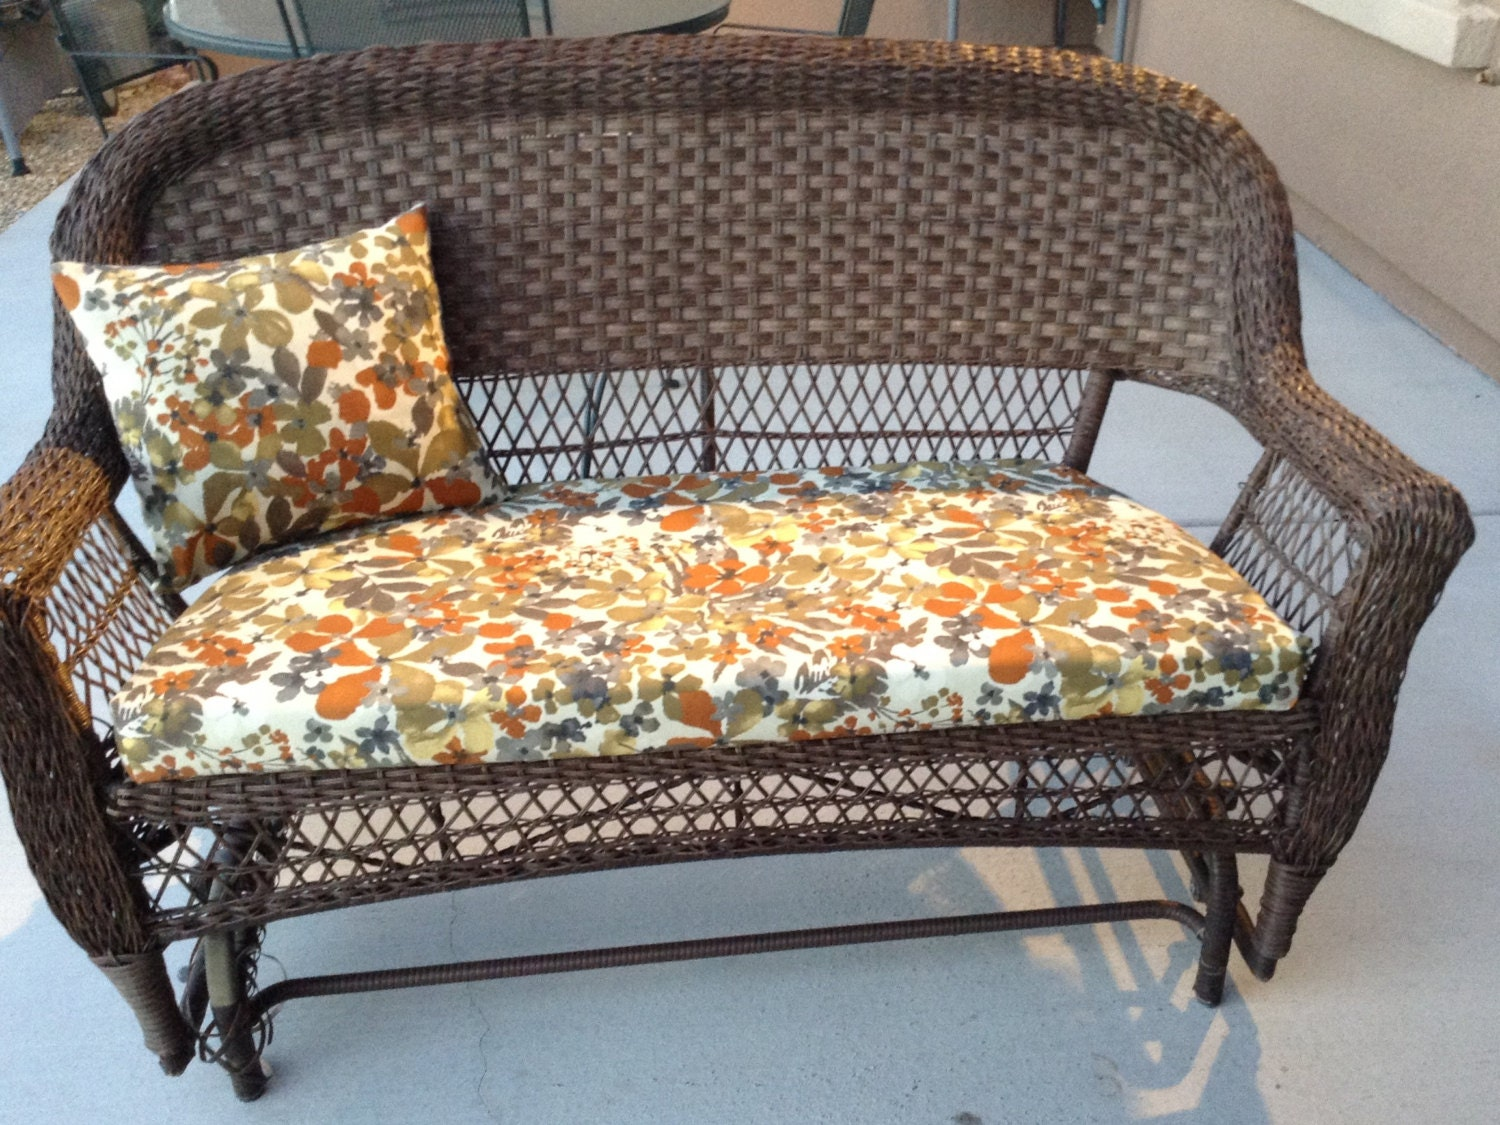 Outdoor patio furniture cushion covers by BrittaLeighDesigns